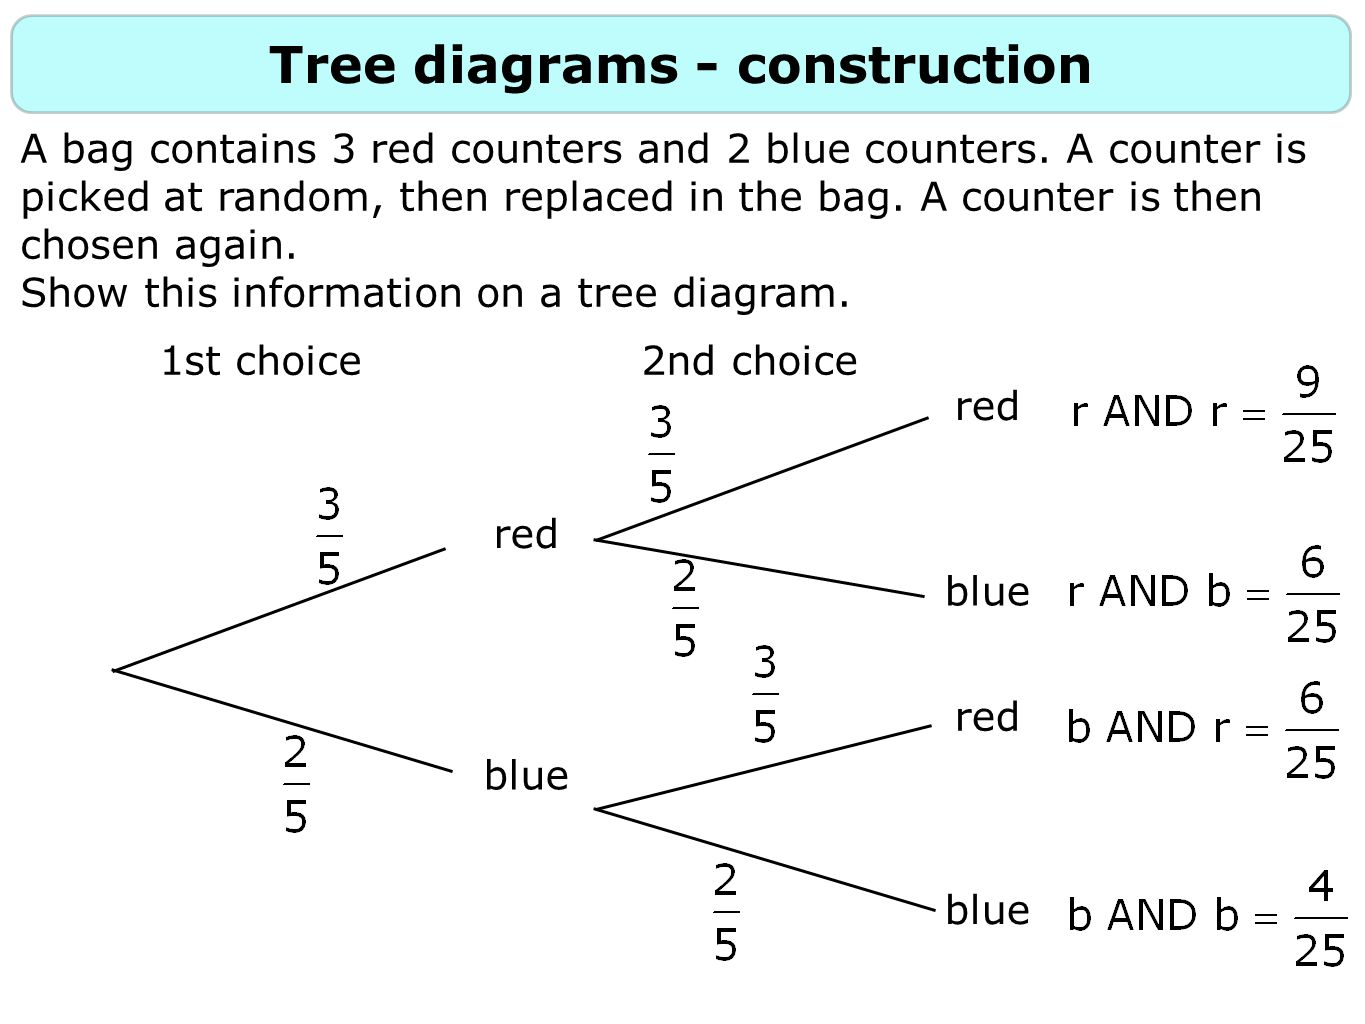 Probability 2 constructing tree diagrams ppt download tree diagrams construction ccuart Gallery